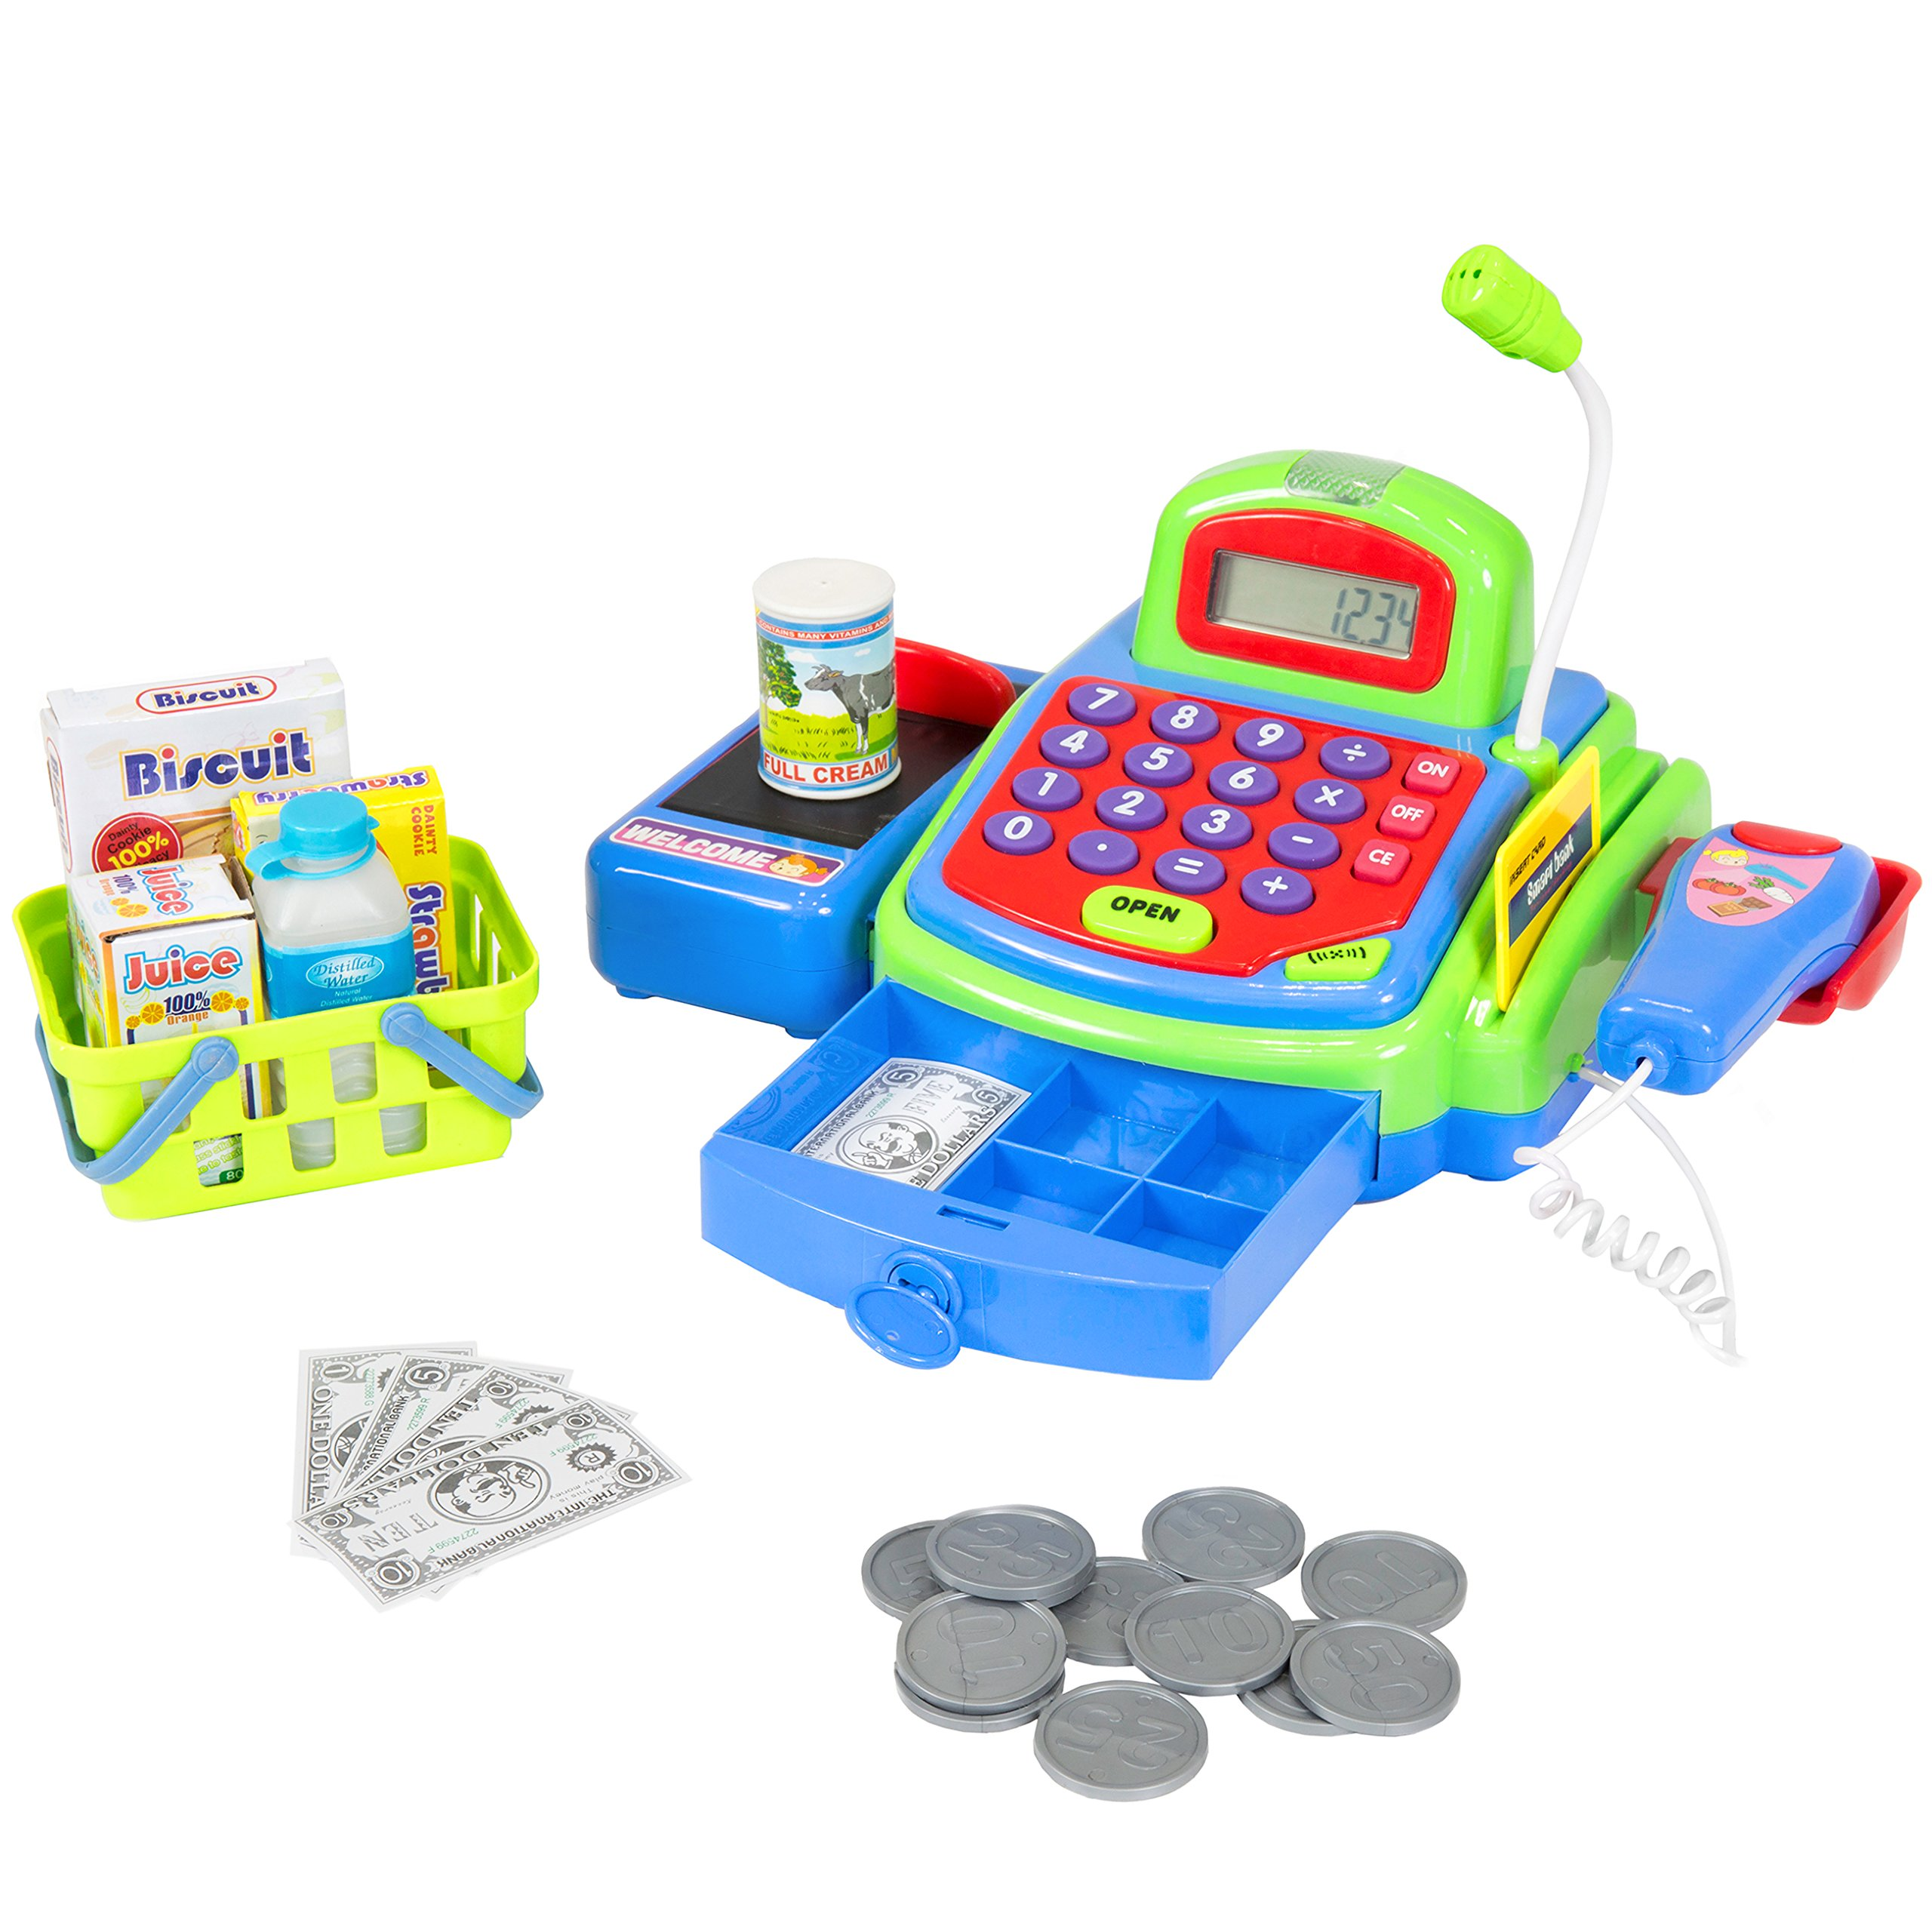 Best Choice Products Kids Educational Cash Register Play Set with Scanner, Calculator, Mic, Multi